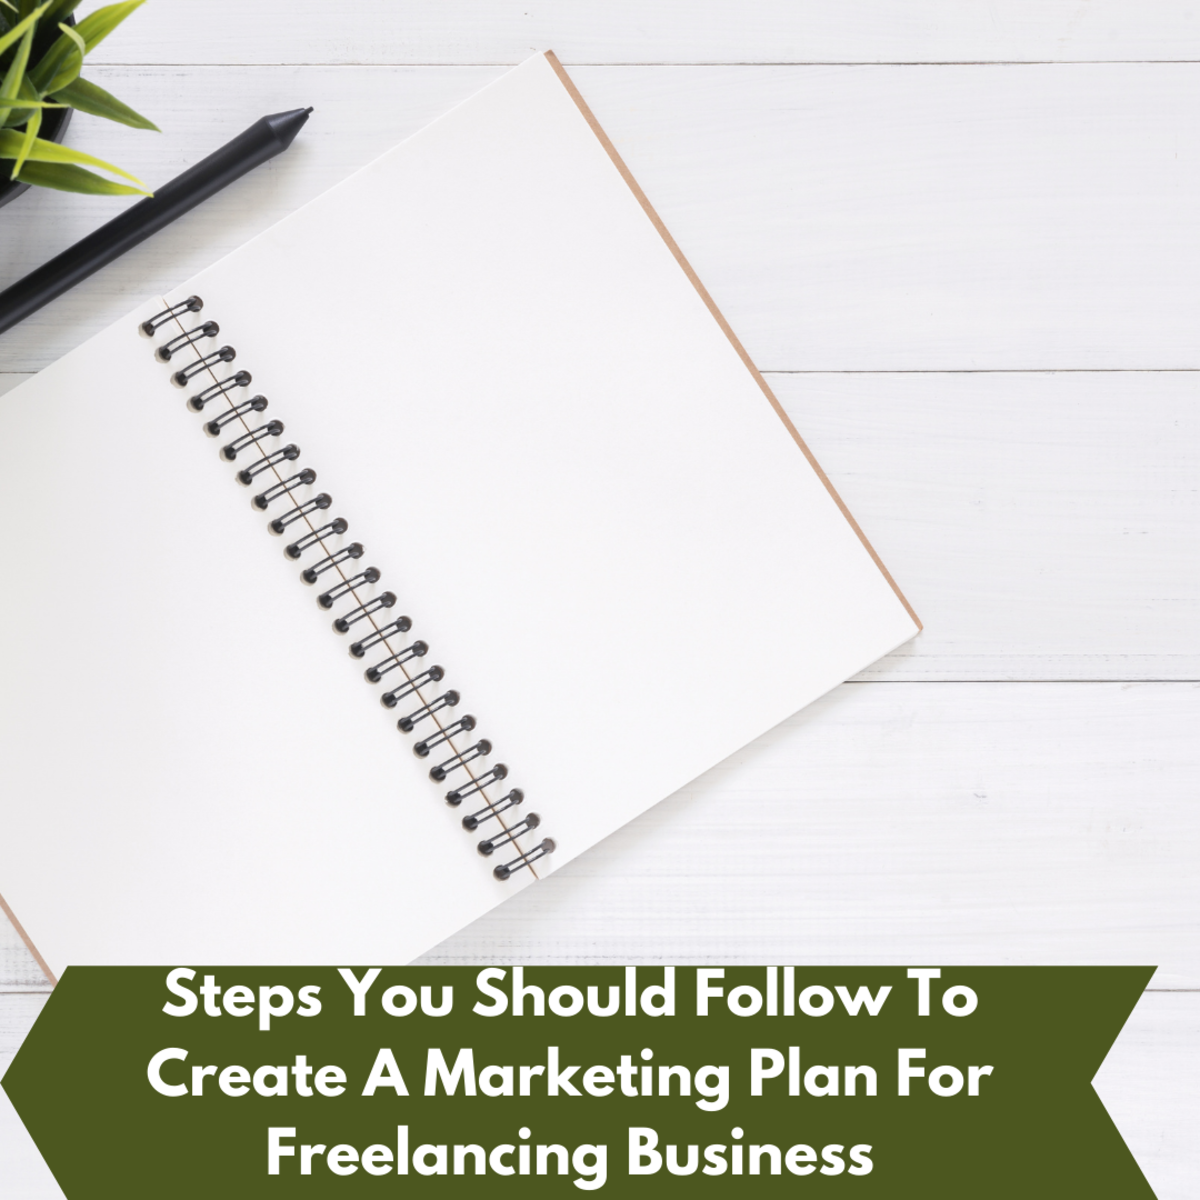 Steps You Should Follow To Create A Marketing Plan For Freelancing Business